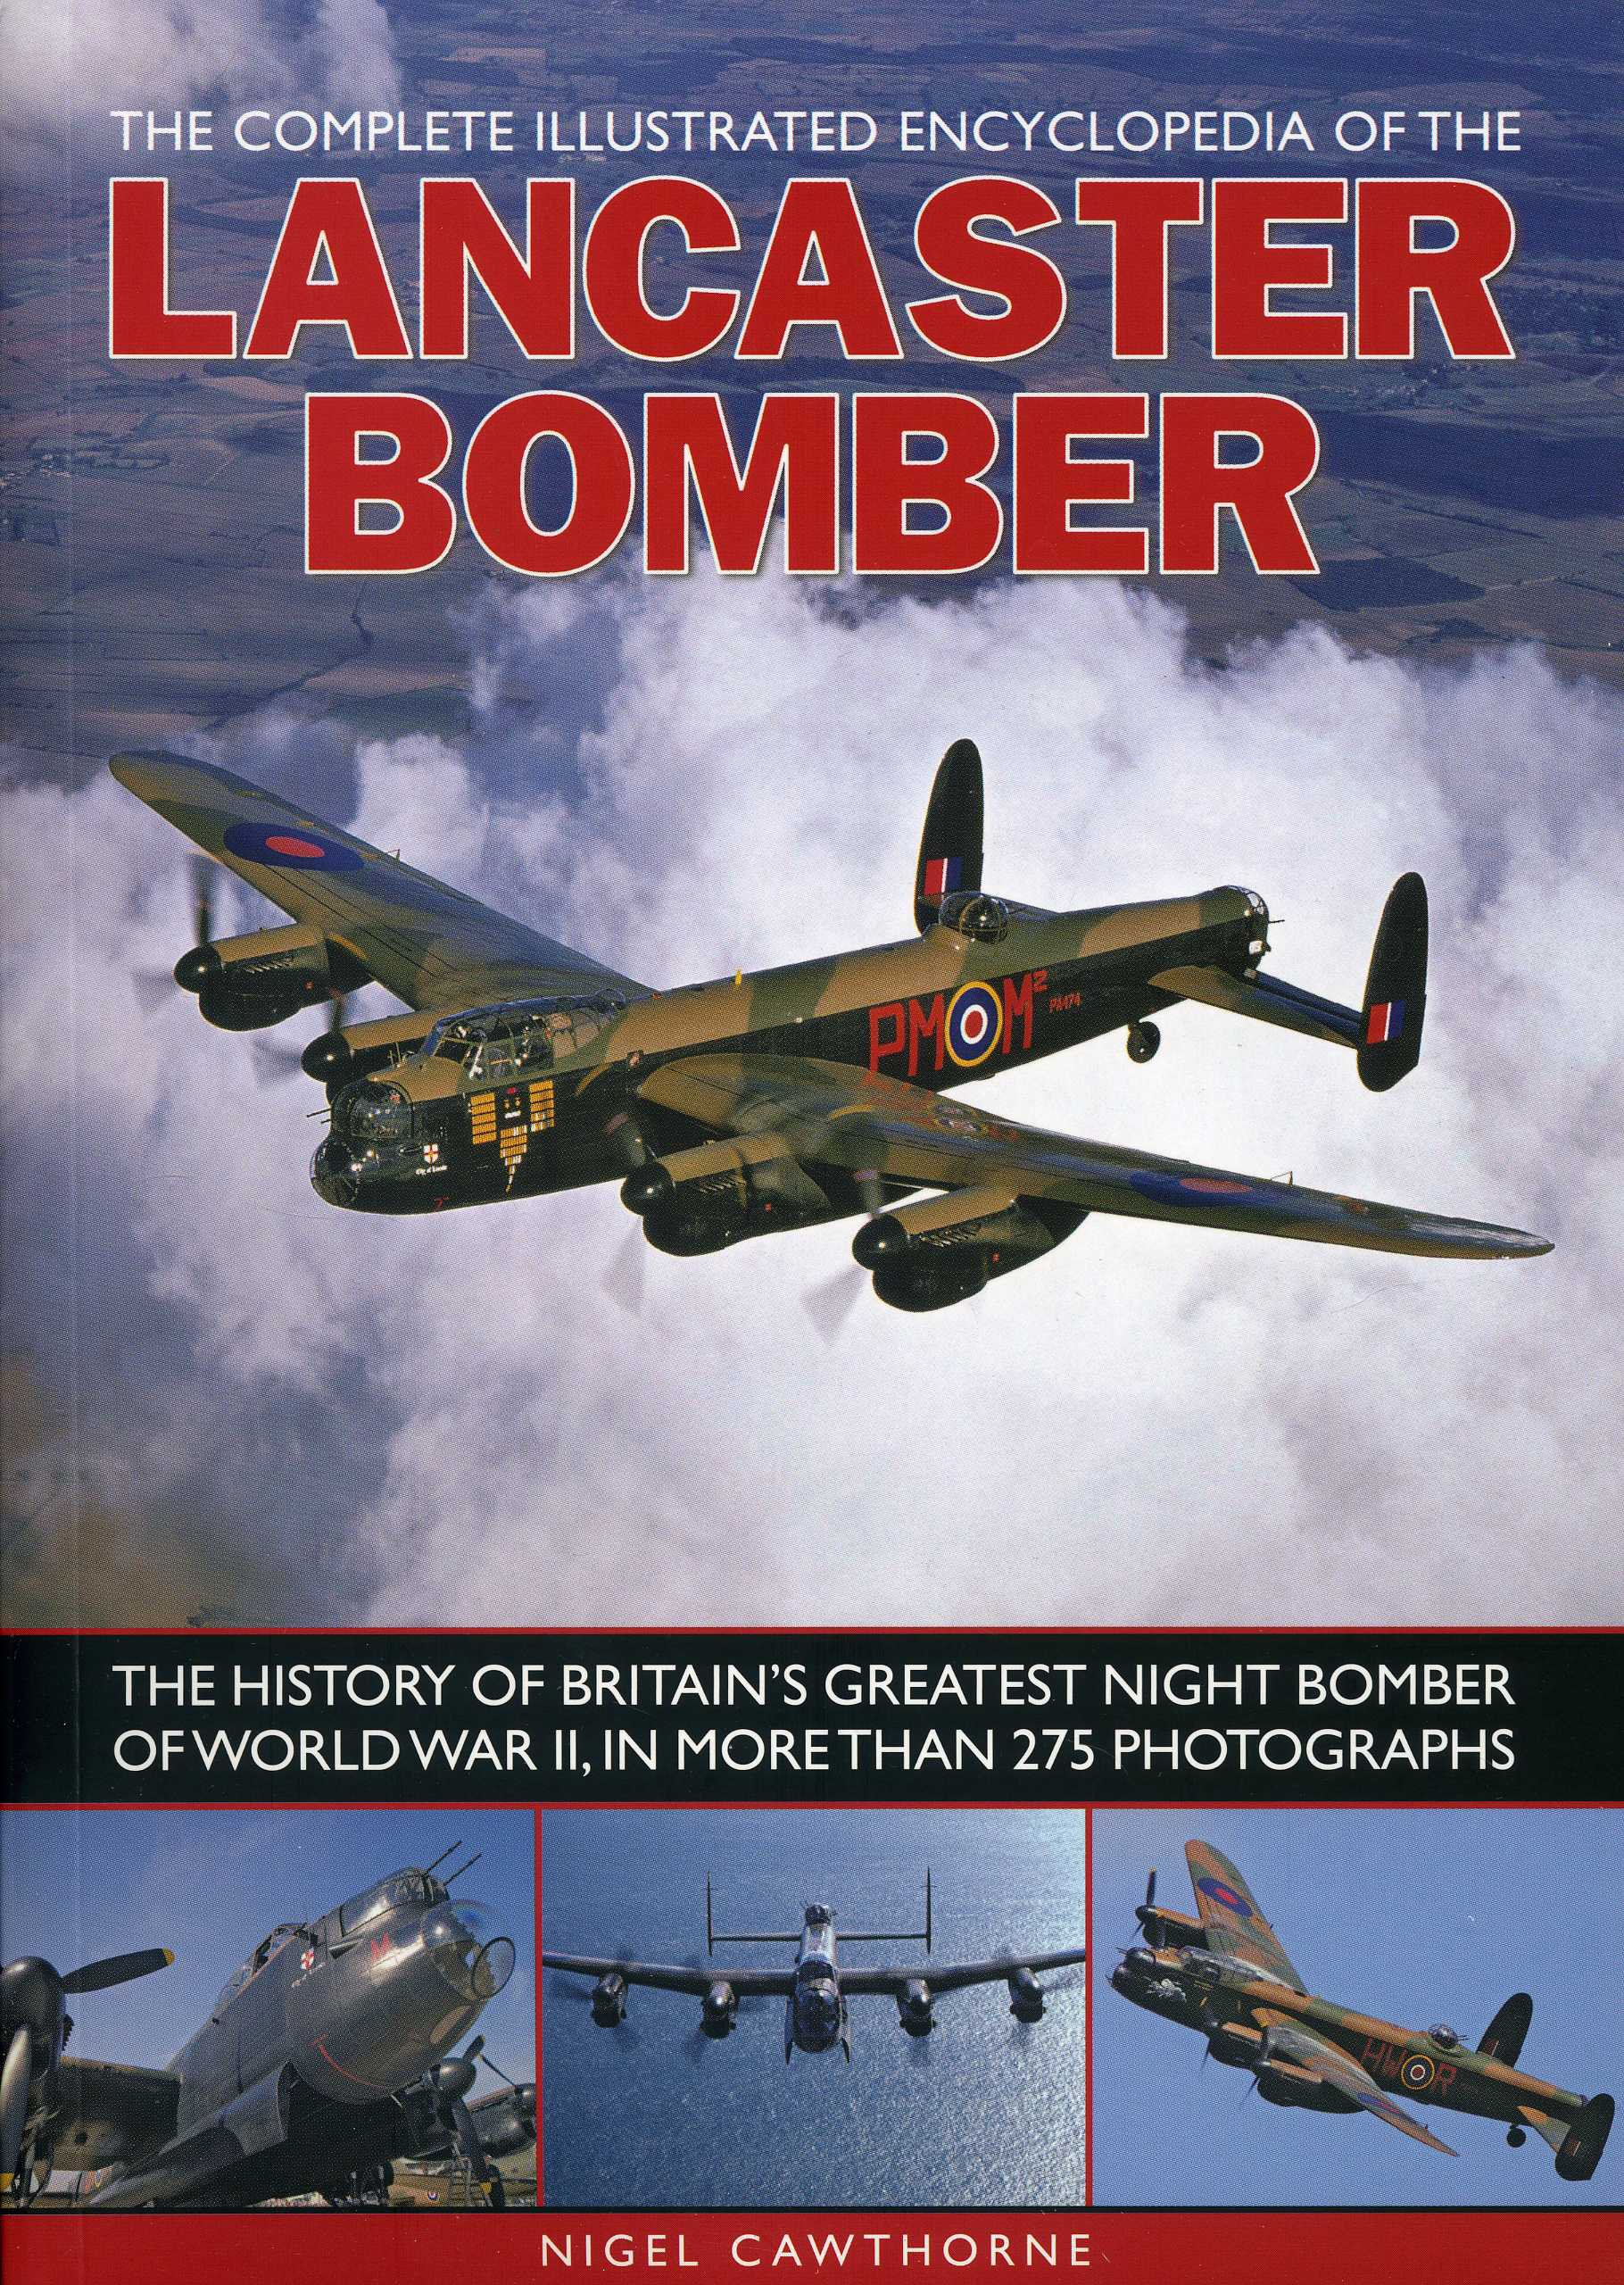 Download The Complete Illustrated Encyclopedia of the Lancaster Bomber: The history of Britain's greatest night bomber of World War II, with more than 275 photographs ebook